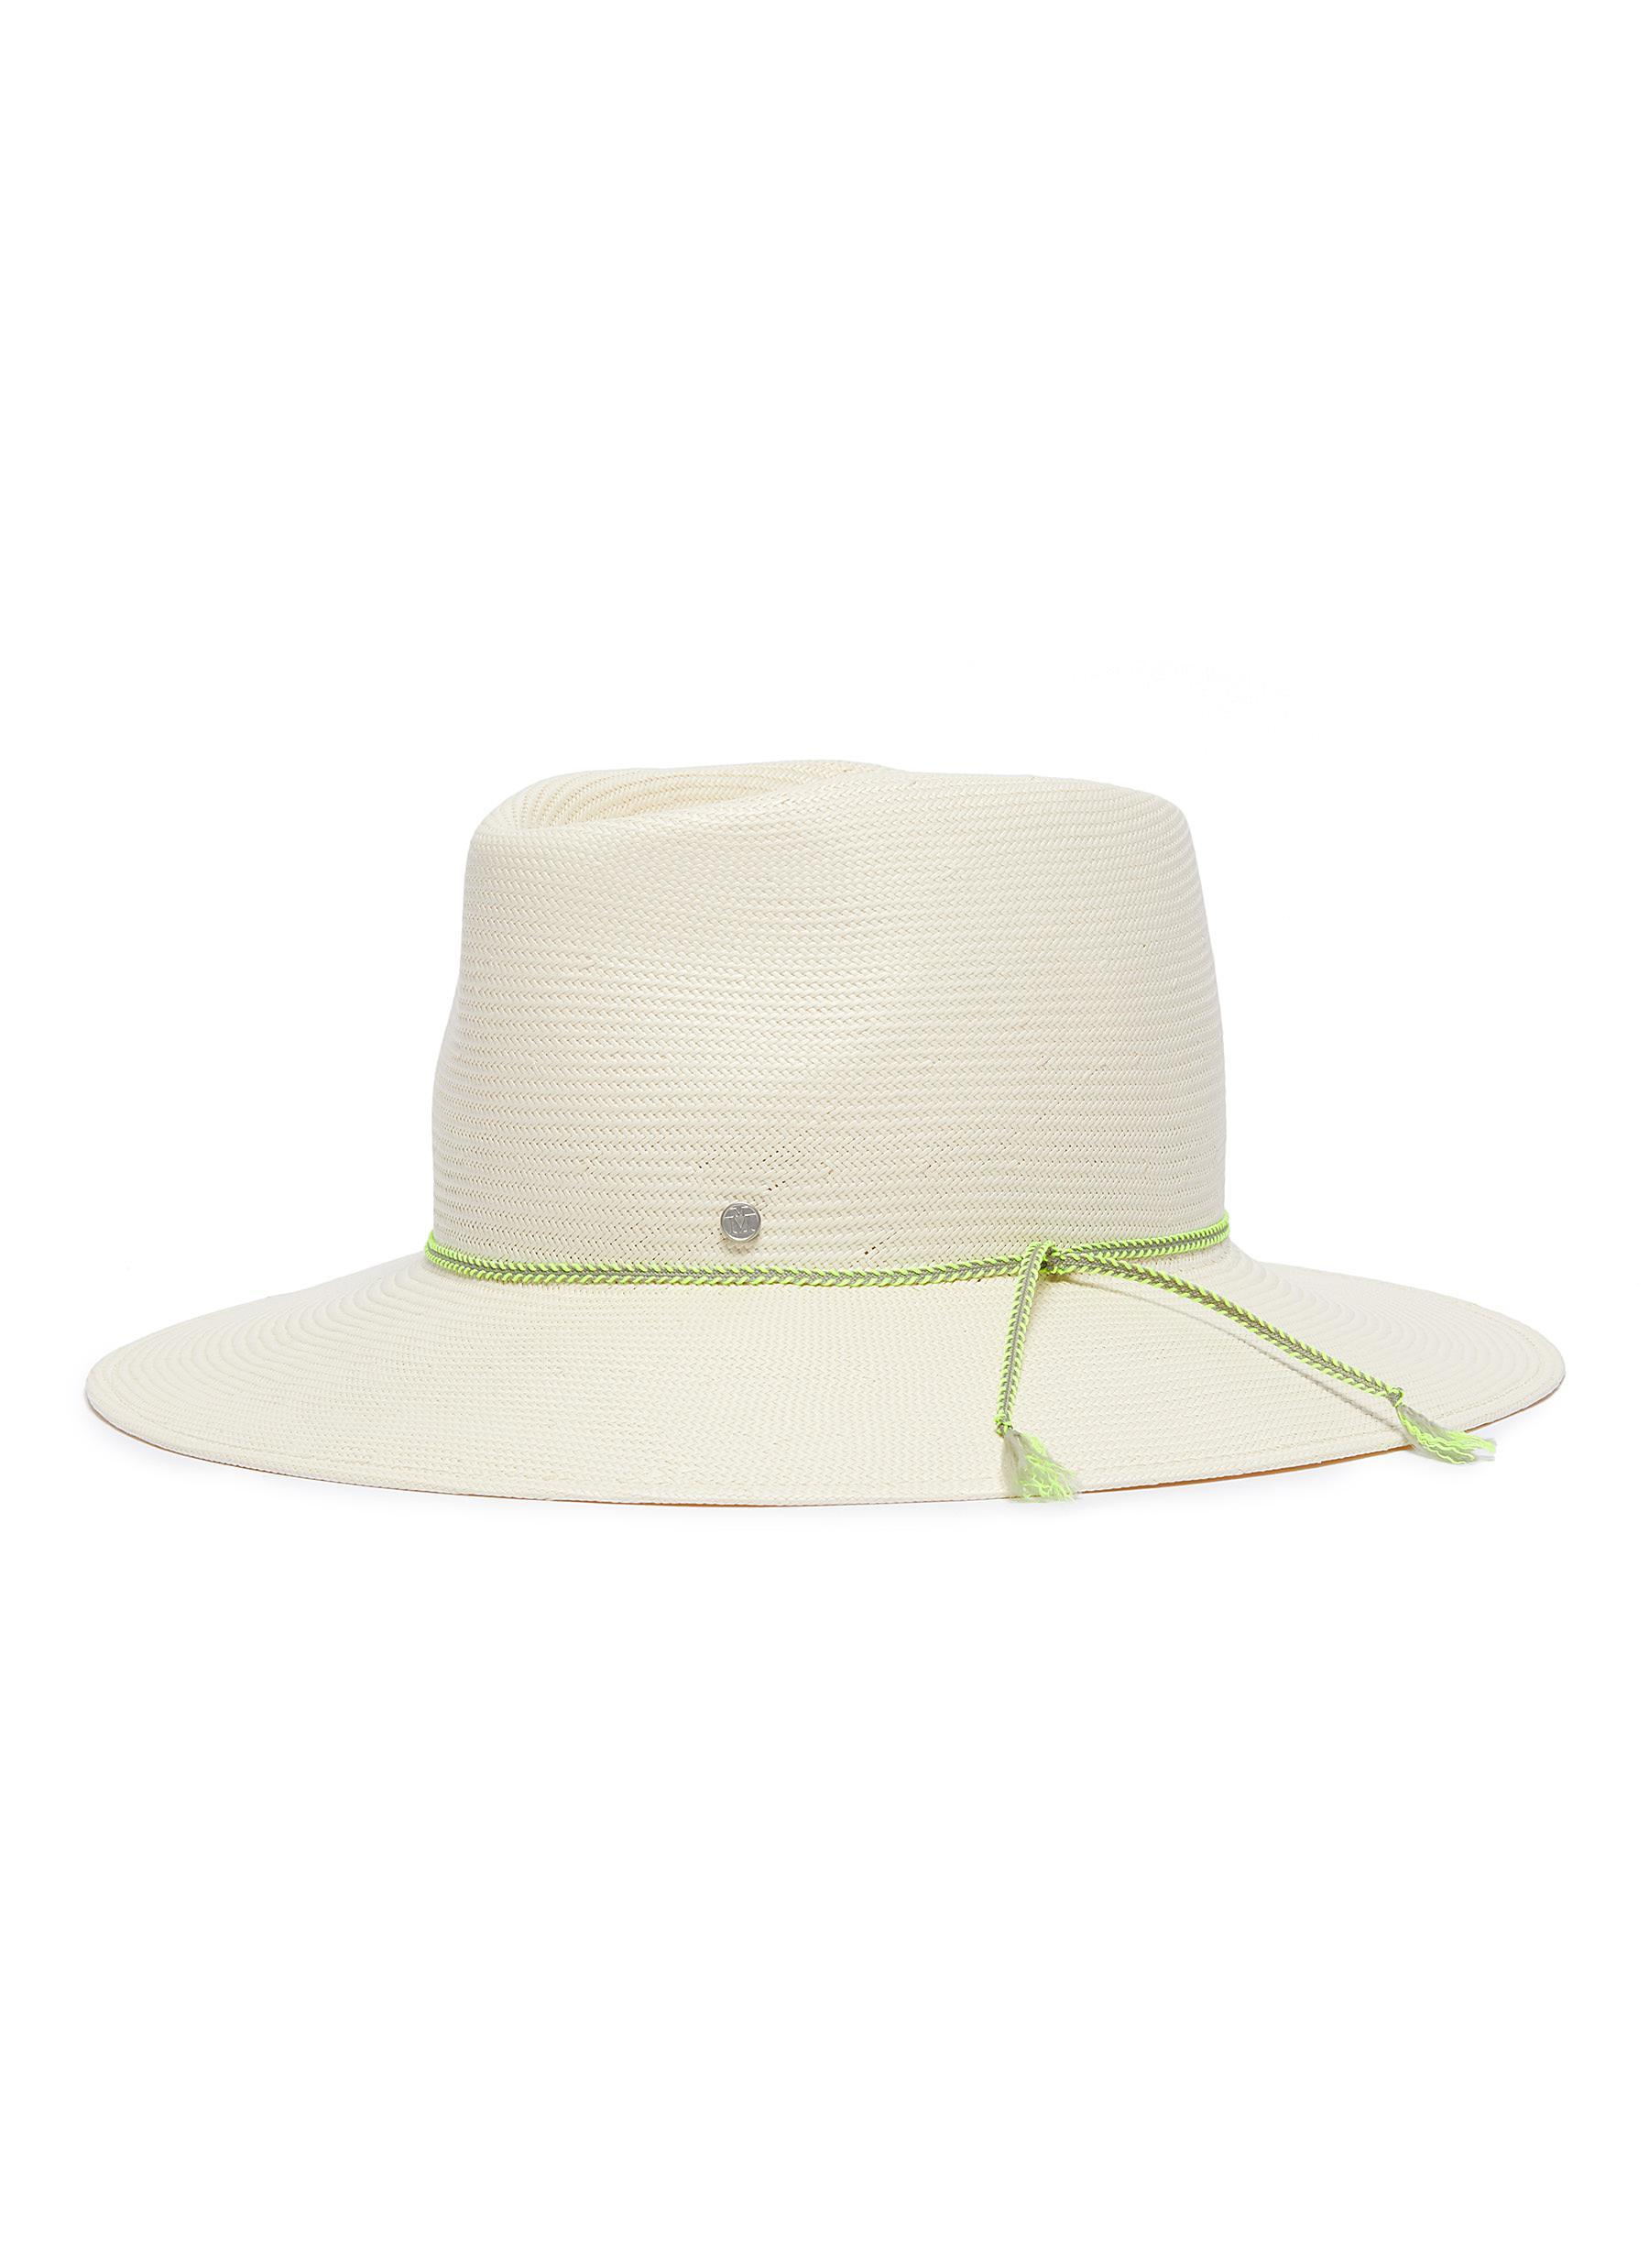 620c054c284c7 Lyst - Maison Michel  charles  Packable Straw Fedora Hat in White